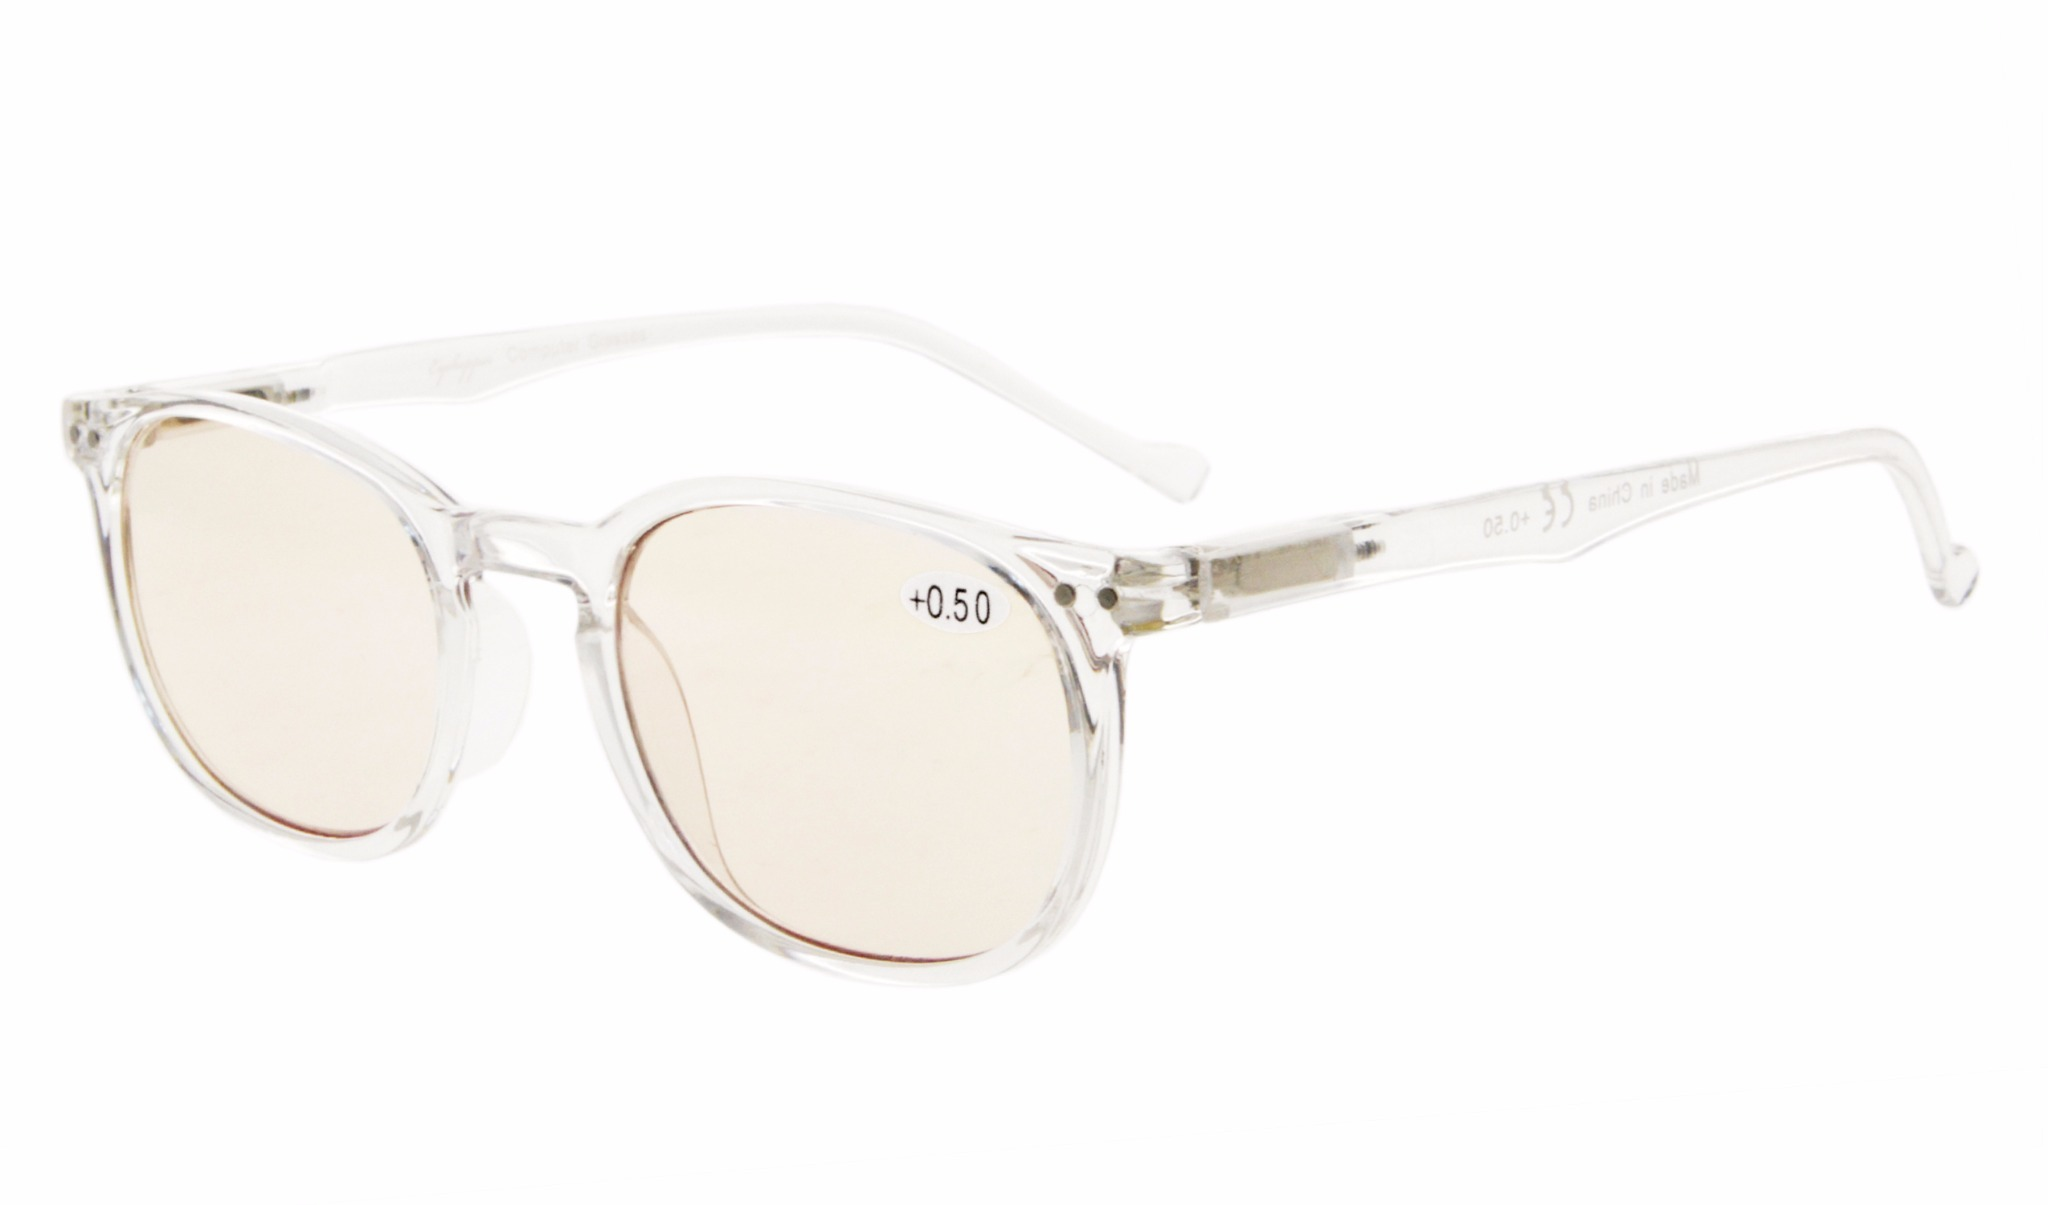 f8e5681eb419 Eyekepper Spring Hinge Classic Retro Style Computer Reading Glasses Amber  Tinted Lens CG065-Clear